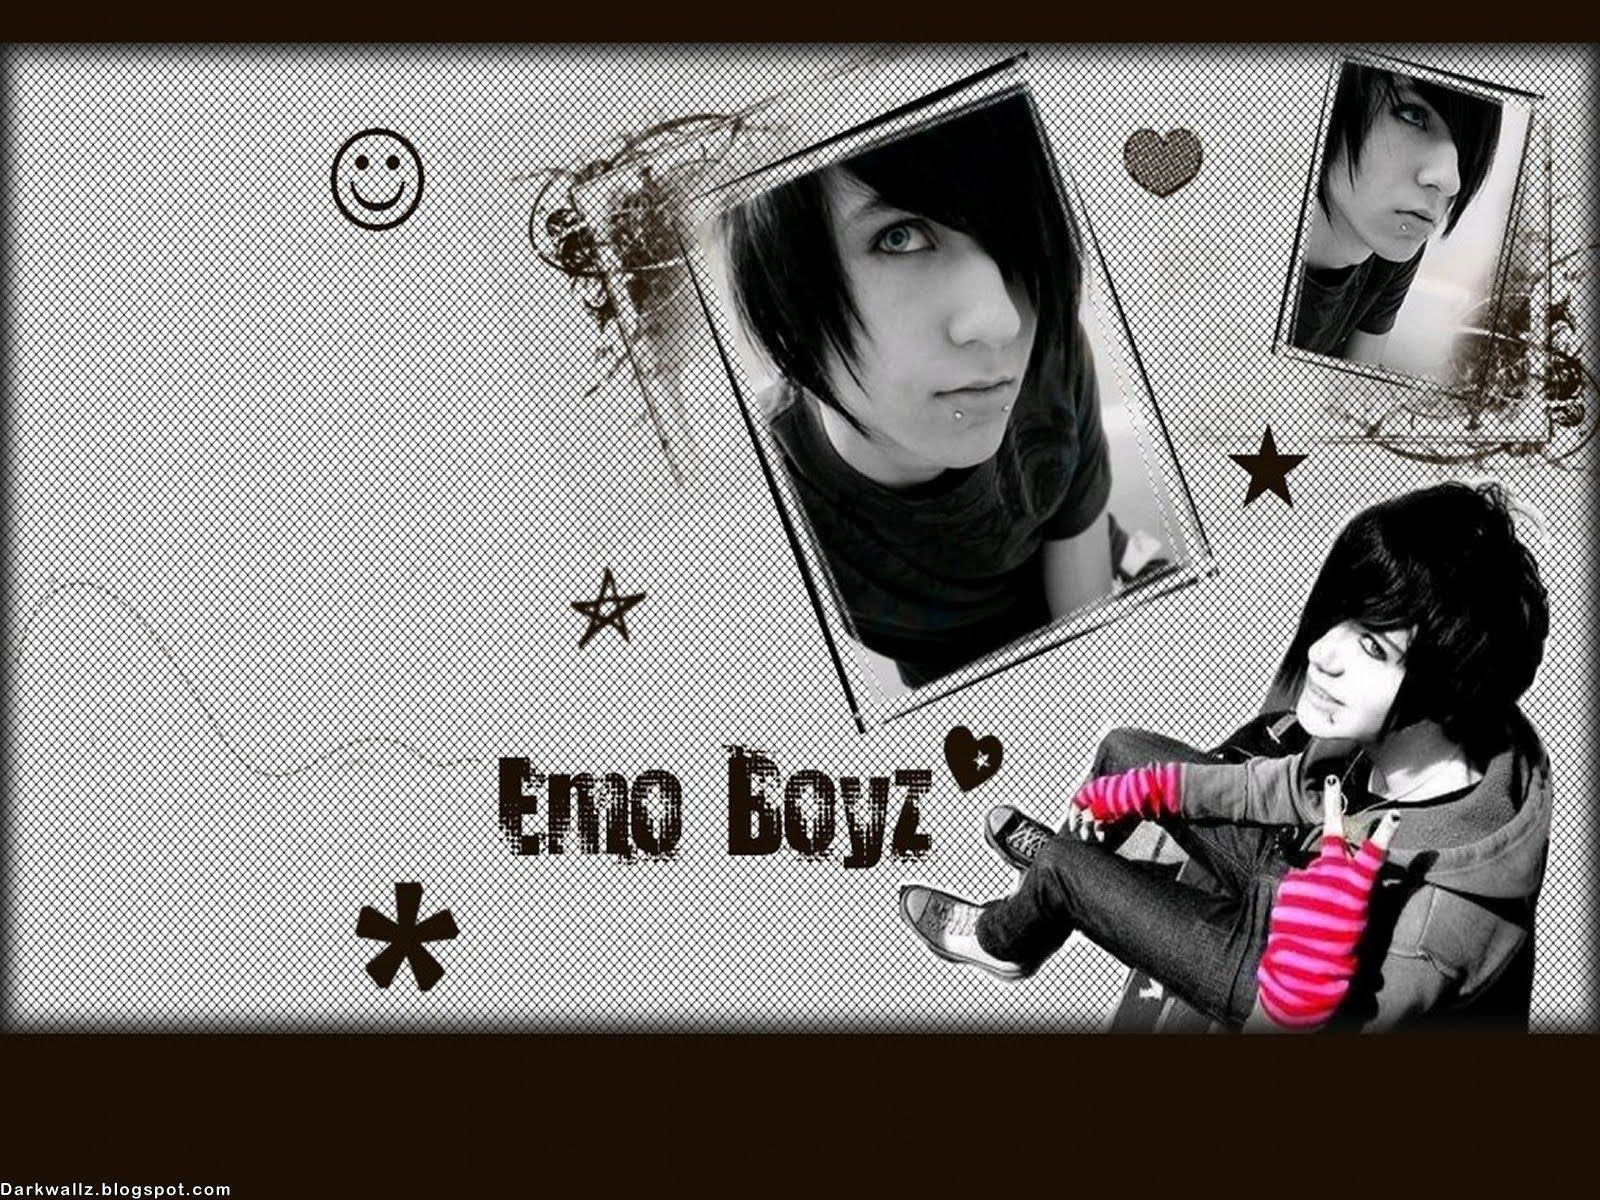 Wallpaper download emo - Emo Boy Wallpapers For Desktop Wallpaper